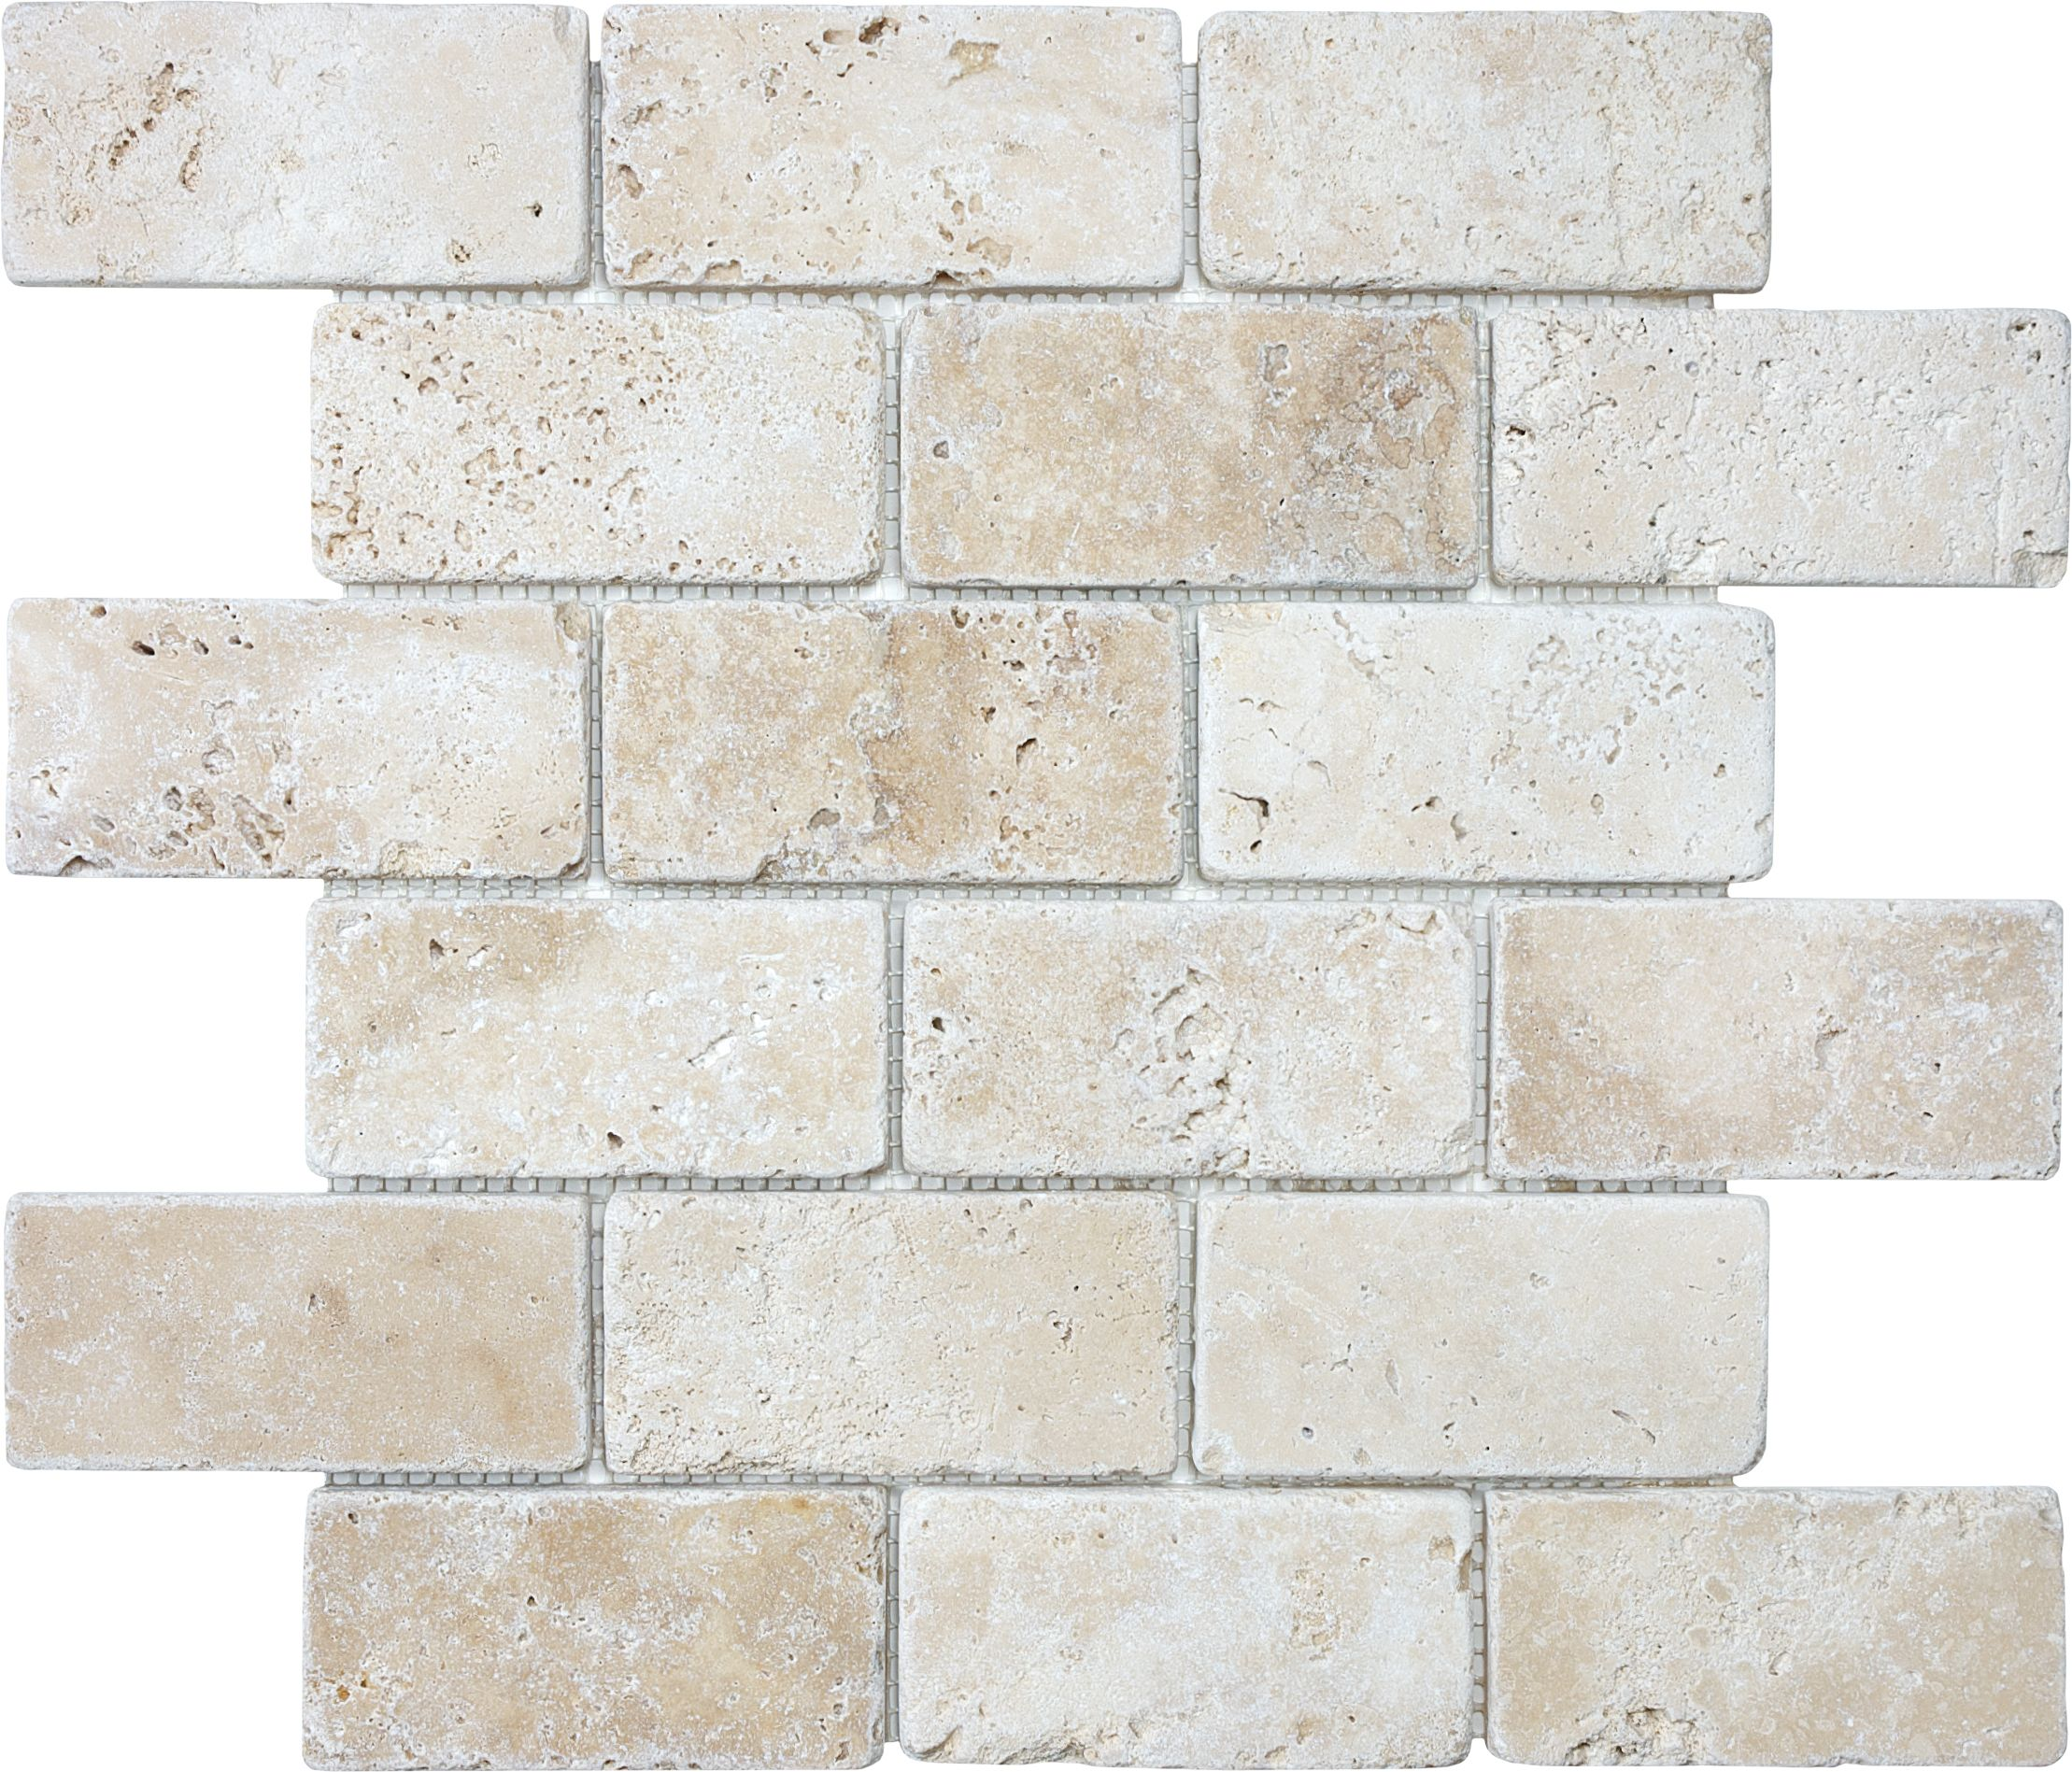 2 perfect colors for kitchen backsplash possibly bar area need these in longer bricks tumbled ivory travertine brick mosaics 2 inches x 4 inches